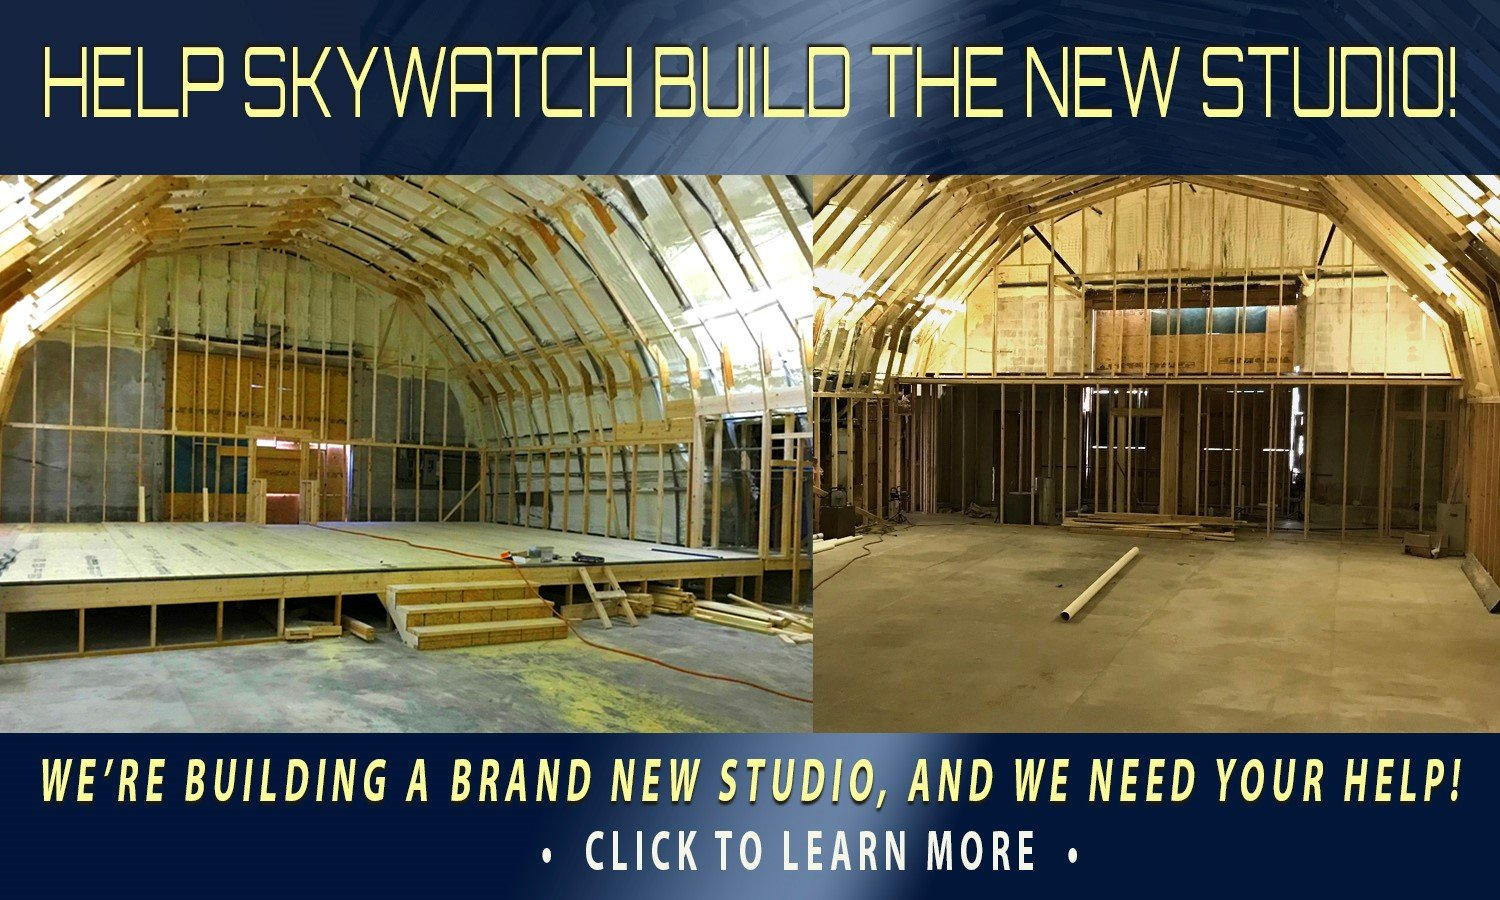 HELP SKYWATCH TV FINISH THE NEW STUDIO AND TAKE THE GOSPEL TRUTH AROUND THE WORLD!